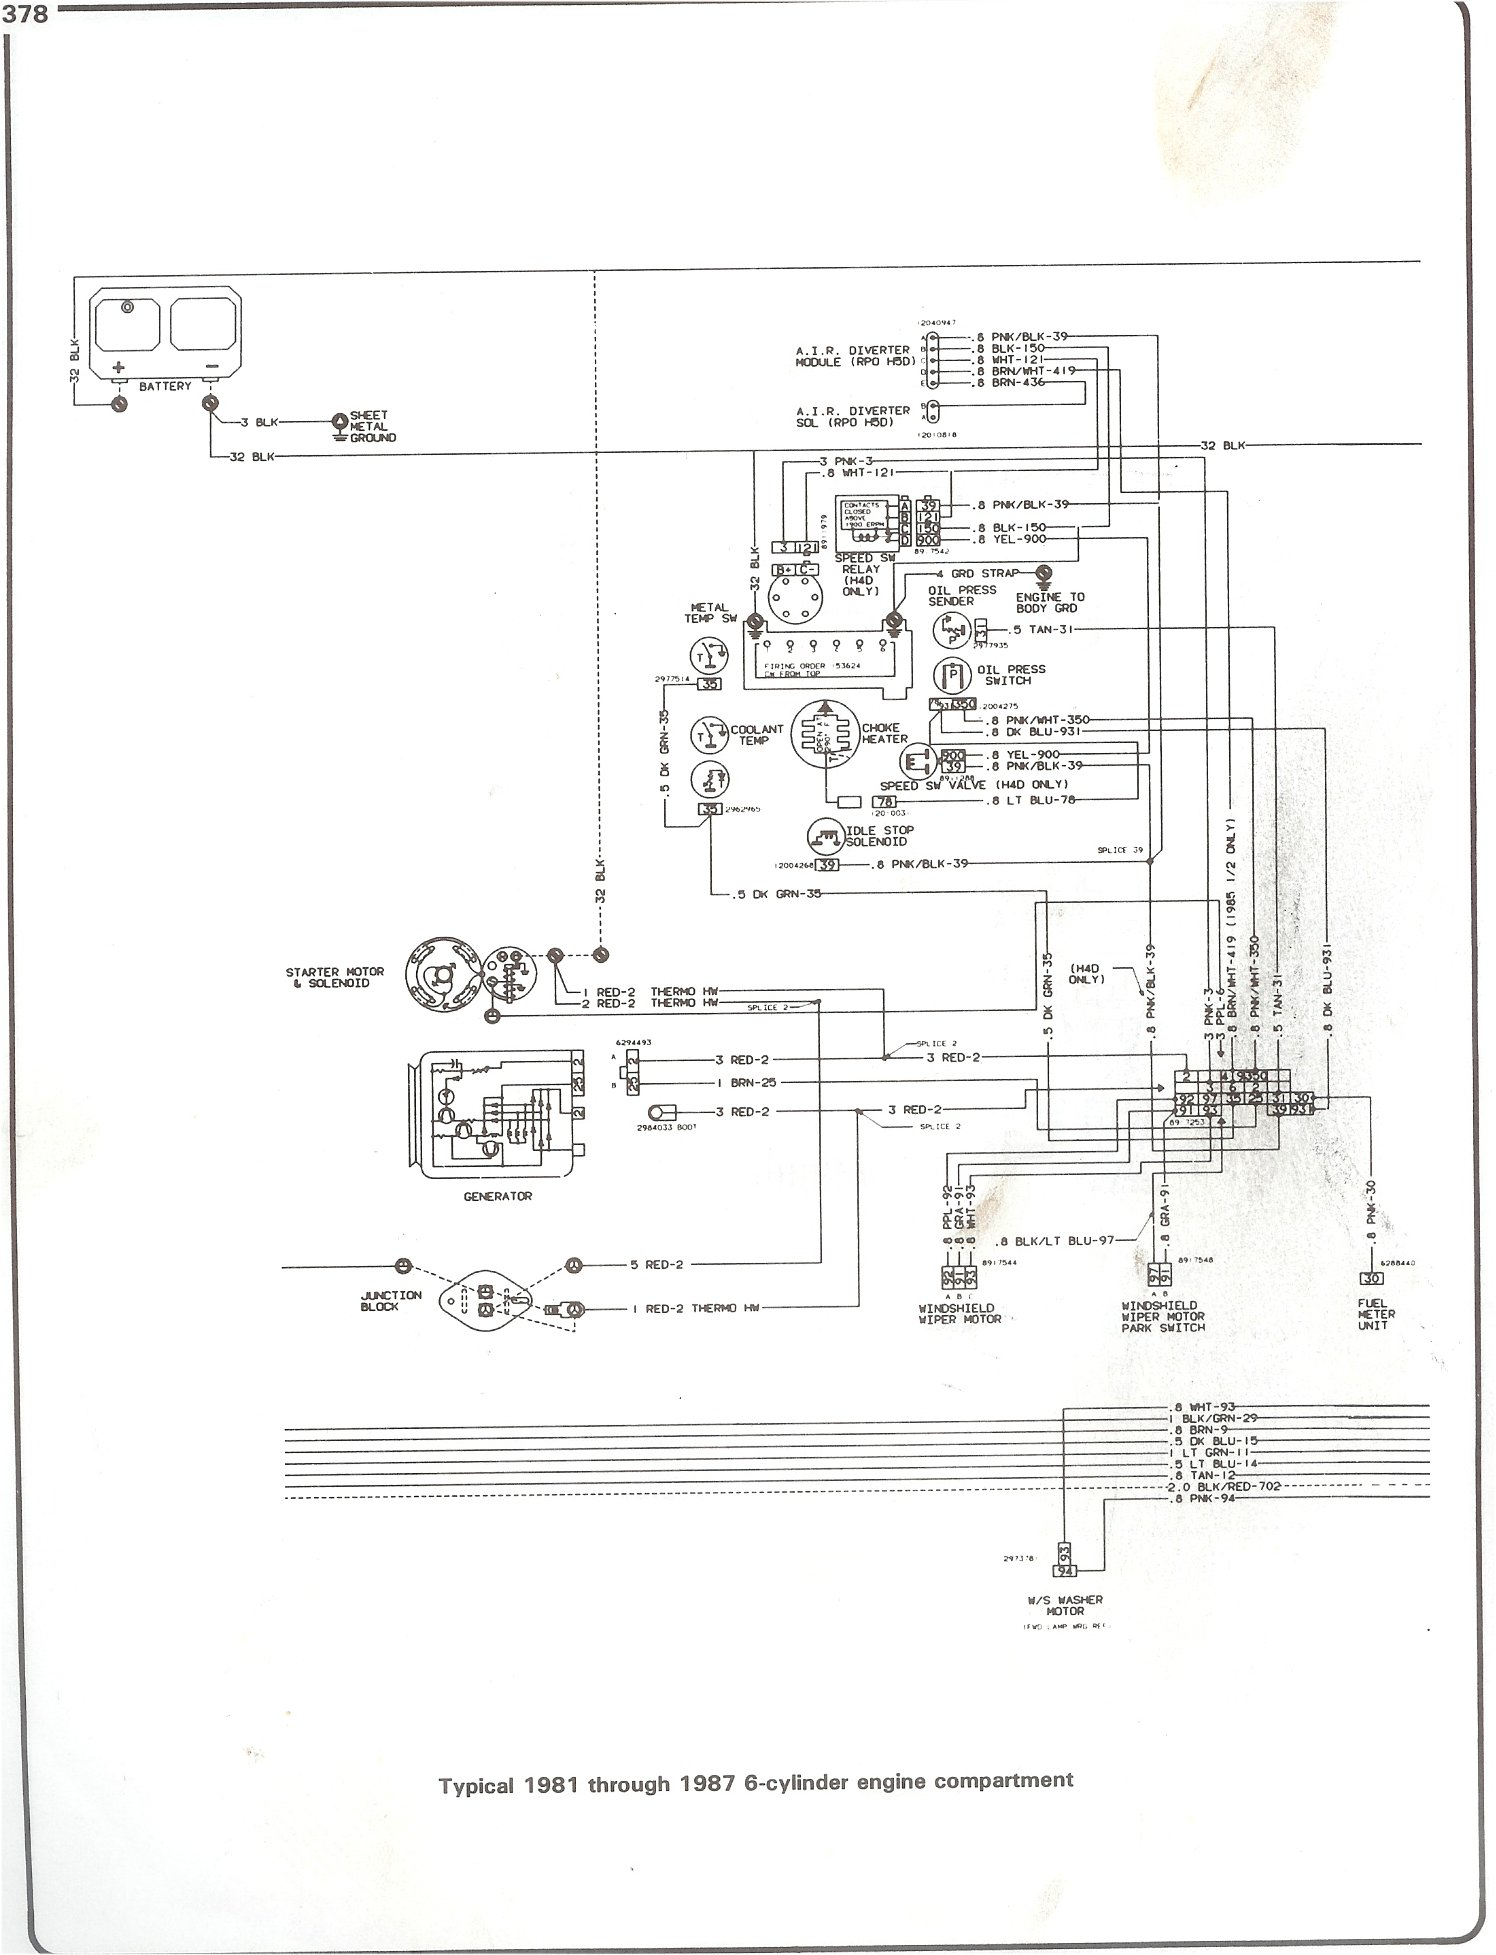 hight resolution of complete 73 87 wiring diagrams hvac wiring diagram 86 chevy truck 81 87 i6 engine compartment